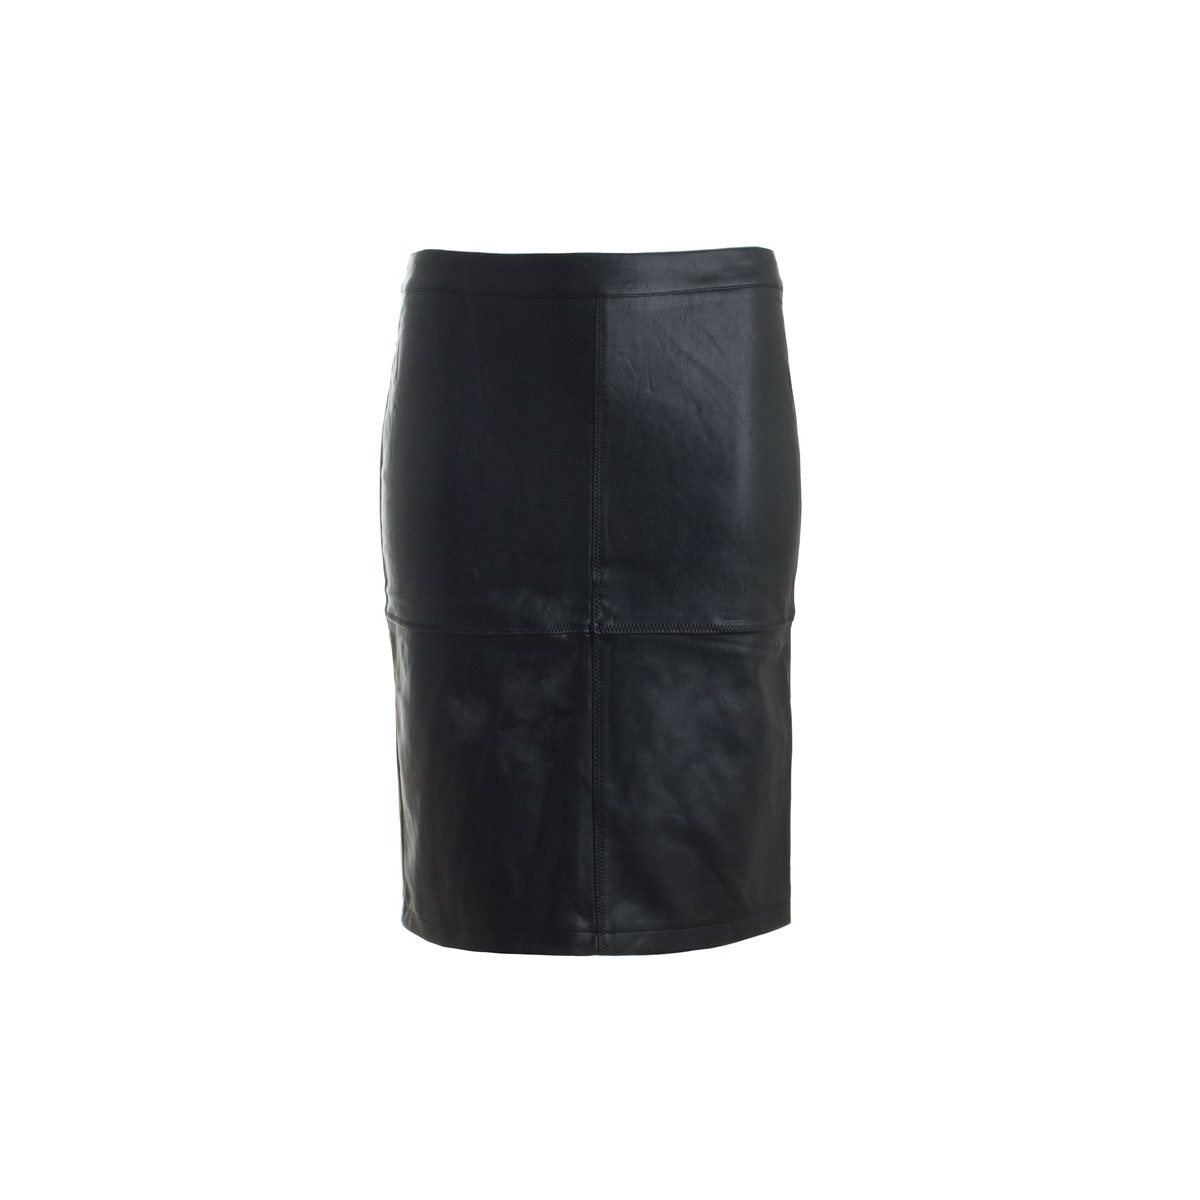 vipen new skirt 14033417 vila rok black